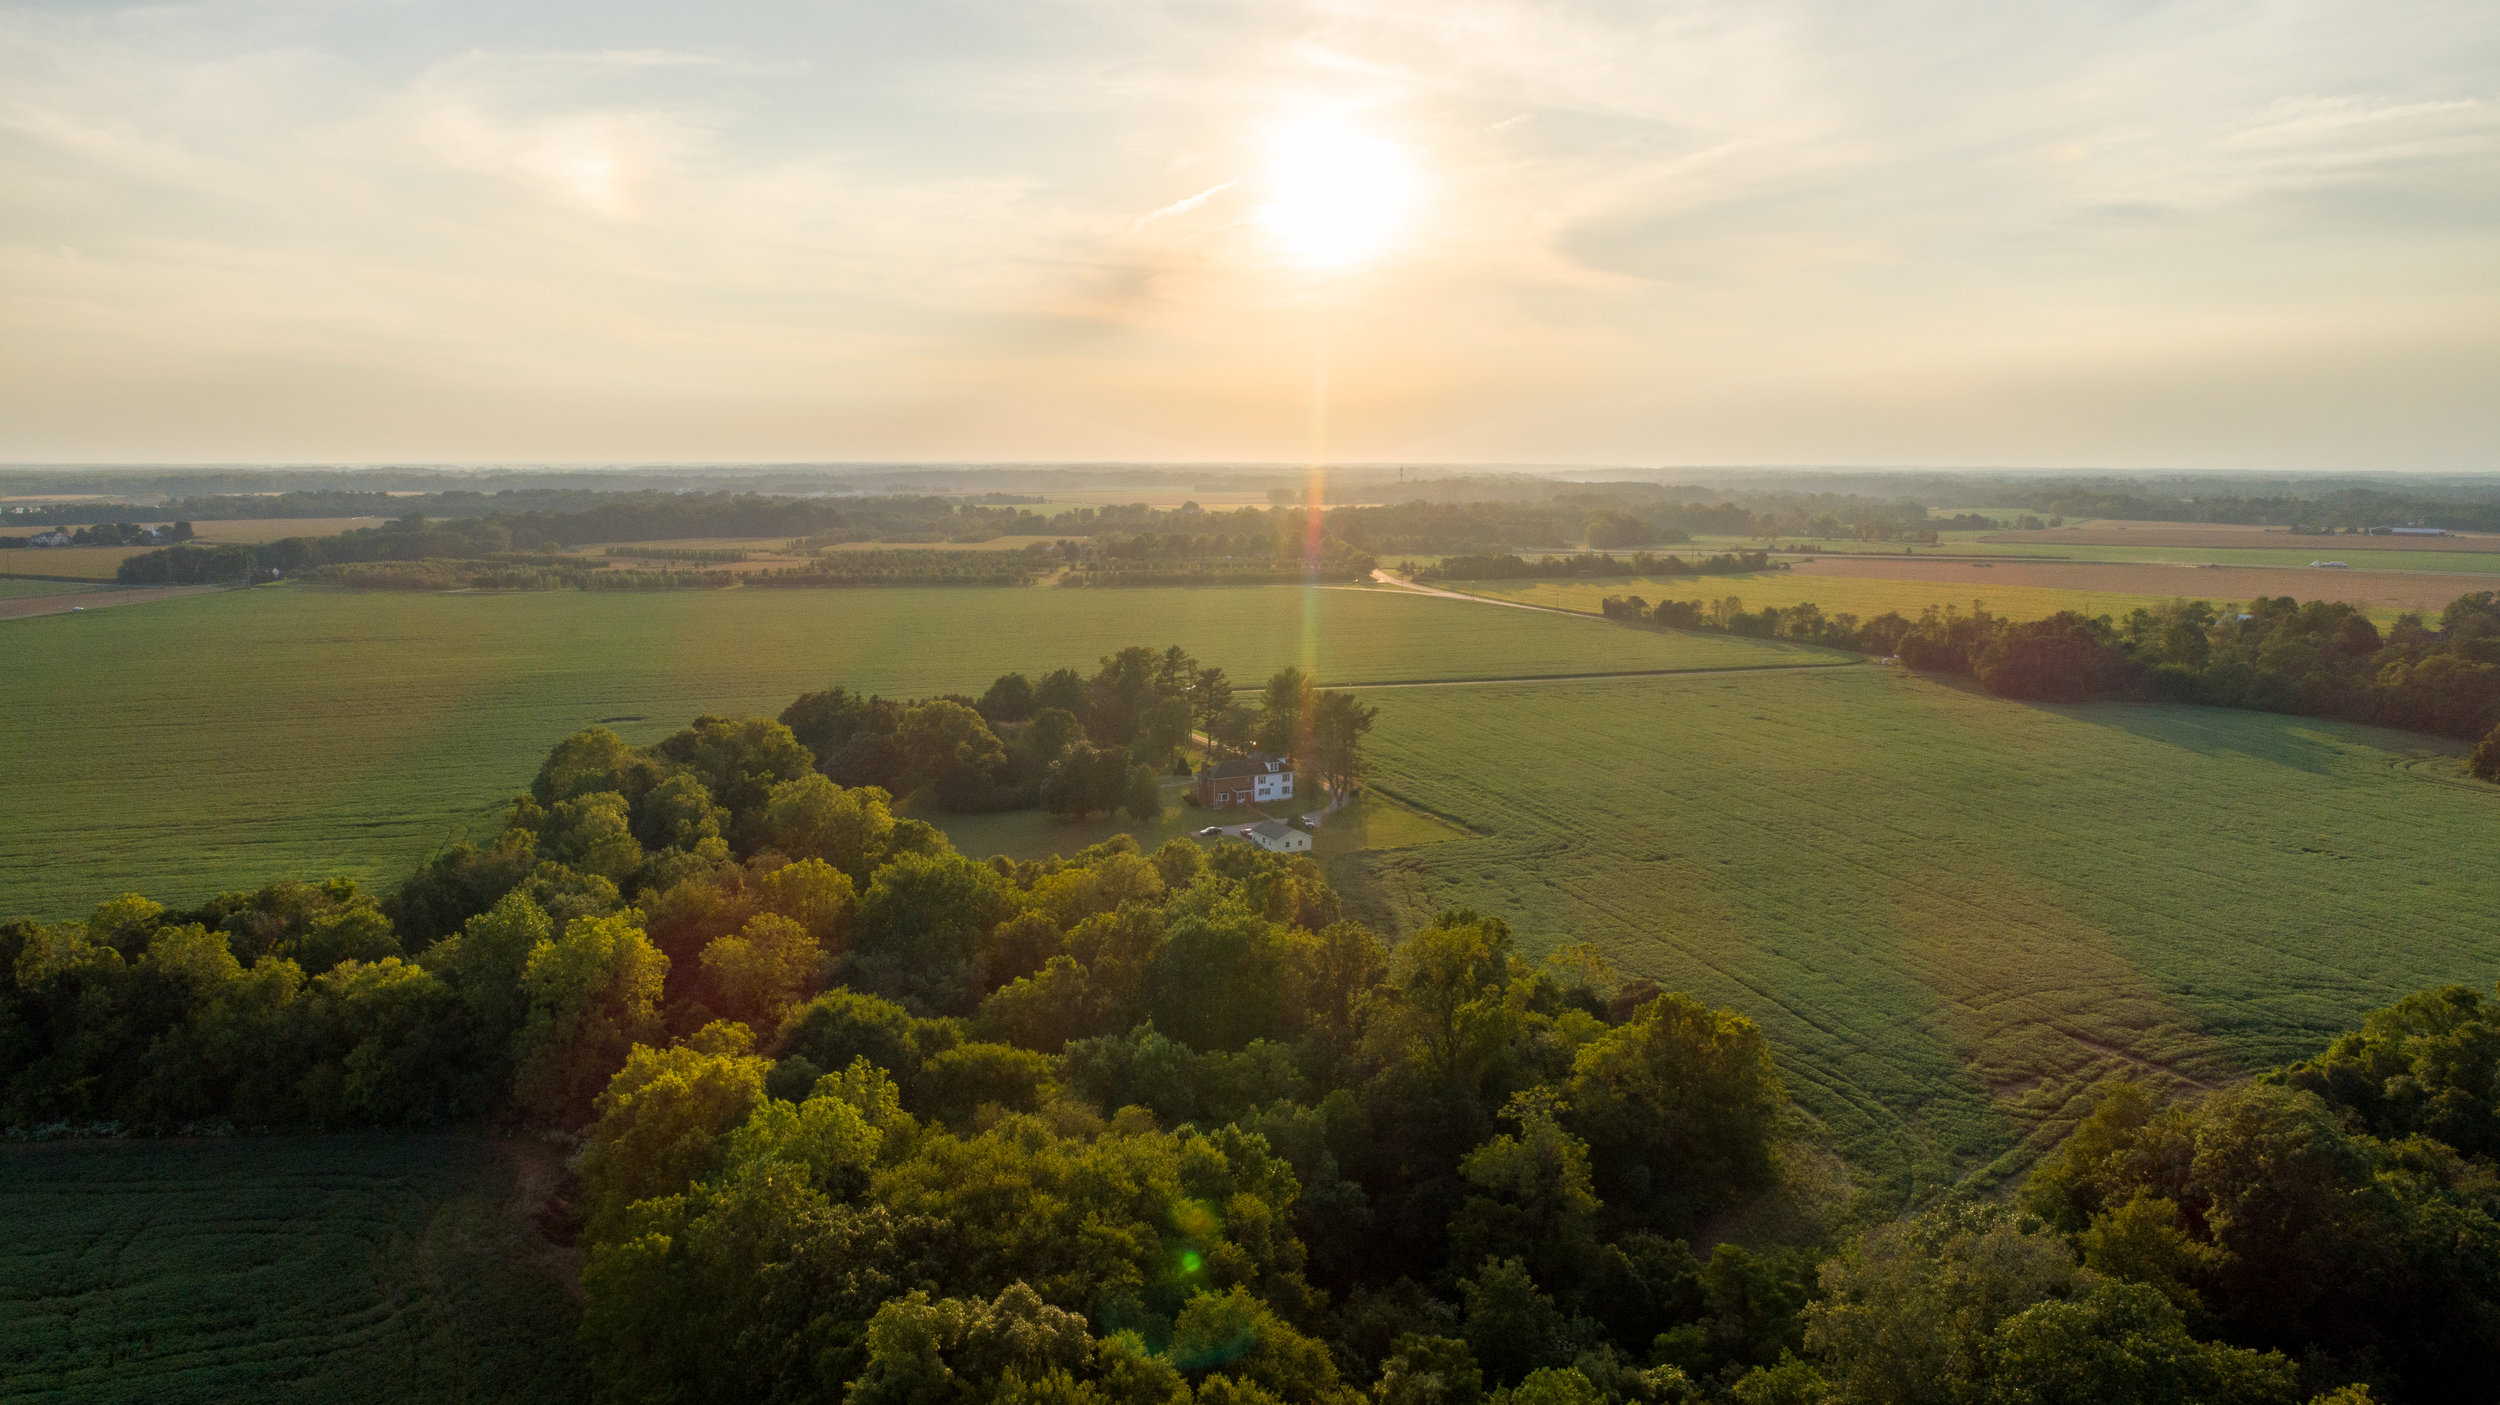 Aerial photo of a real estate shoot at a farm in Galena on Maryland's Eastern Shore